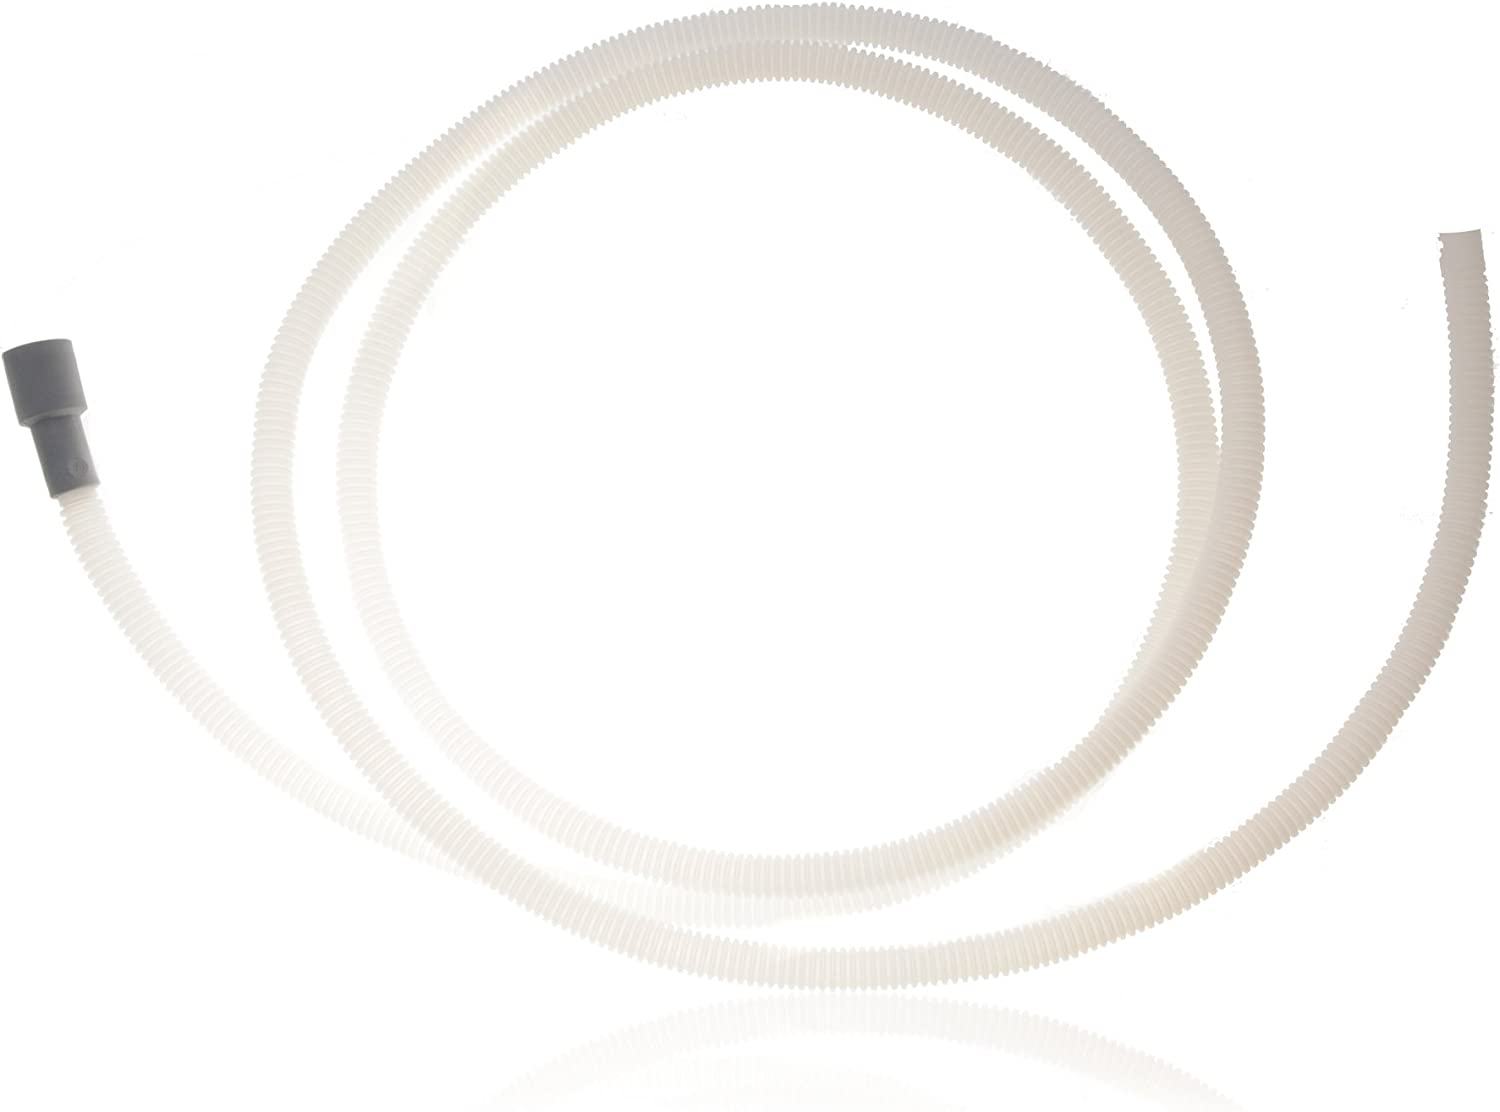 Whirlpool 3385556 Tall Gorgeous Tub Drain Special Campaign Hose Dishwasher Extension